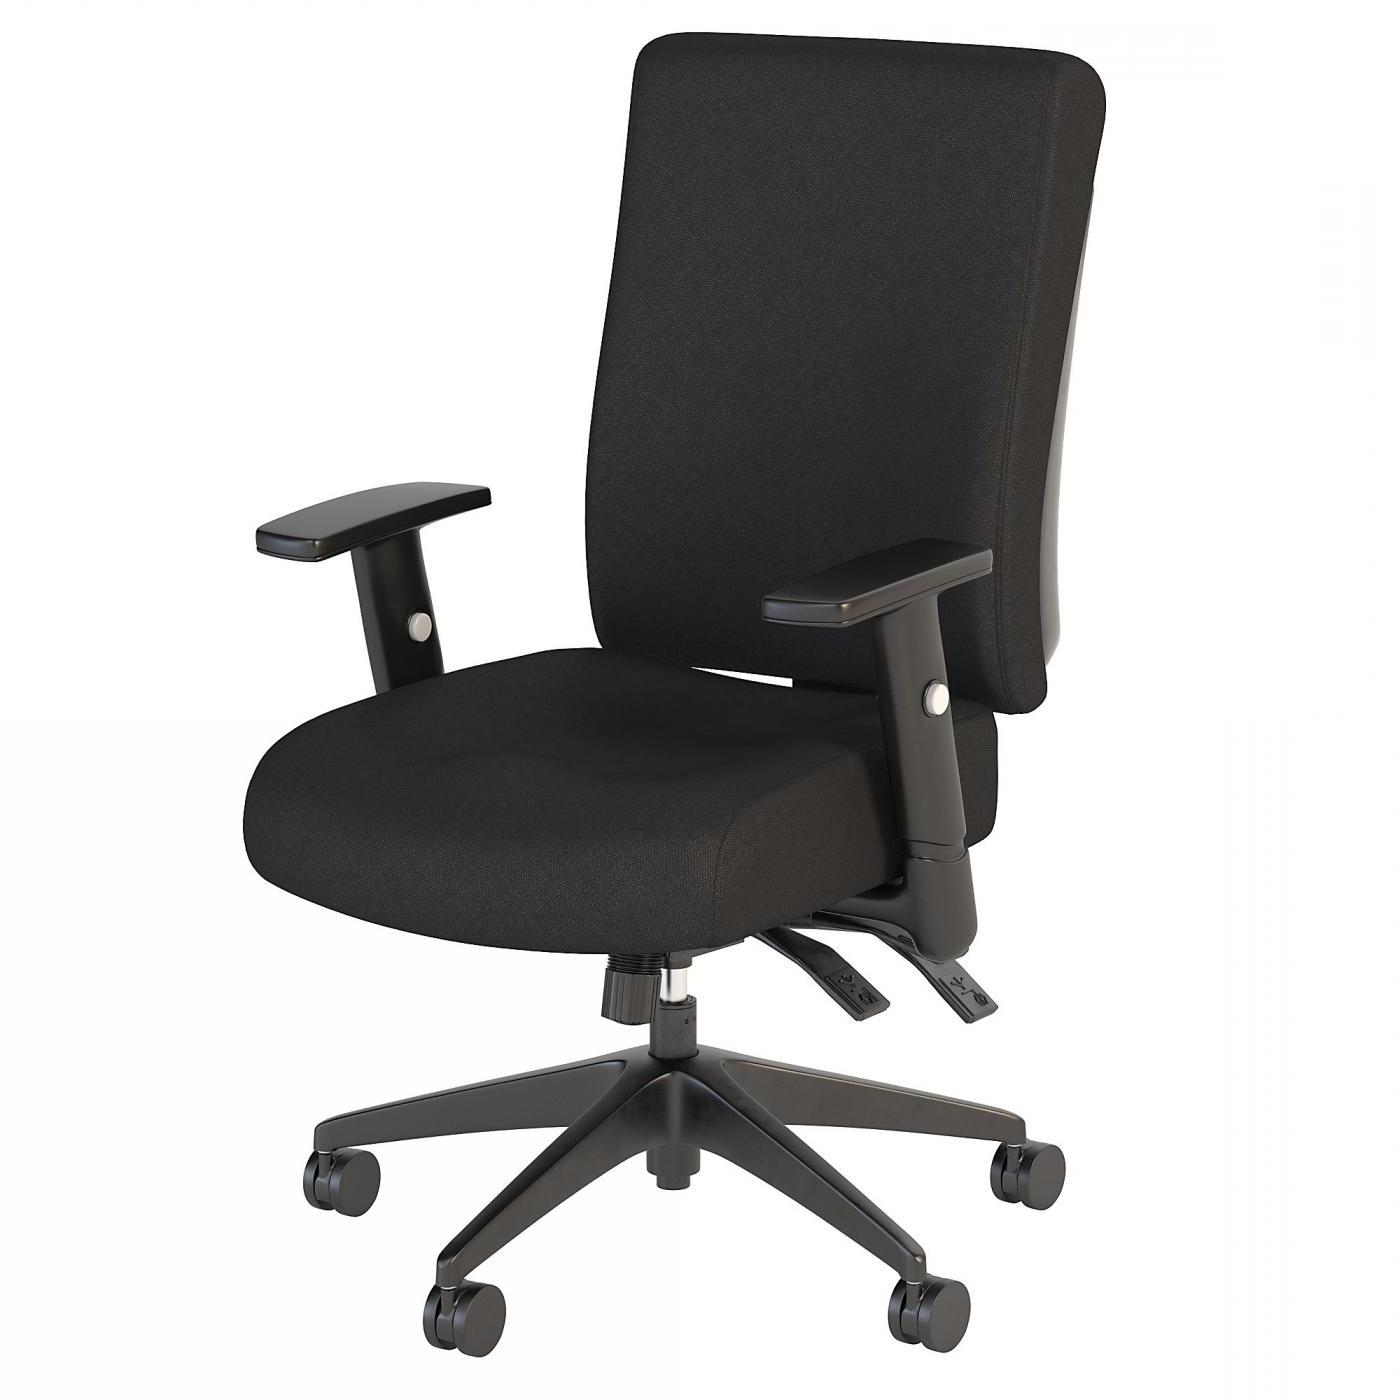 <font color=#c60><b>BUSH BUSINESS FURNITURE ACCORD HIGH BACK DELUXE MULTIFUNCTION OFFICE CHAIR. FREE SHIPPING</font></b> </font></b></font></b>